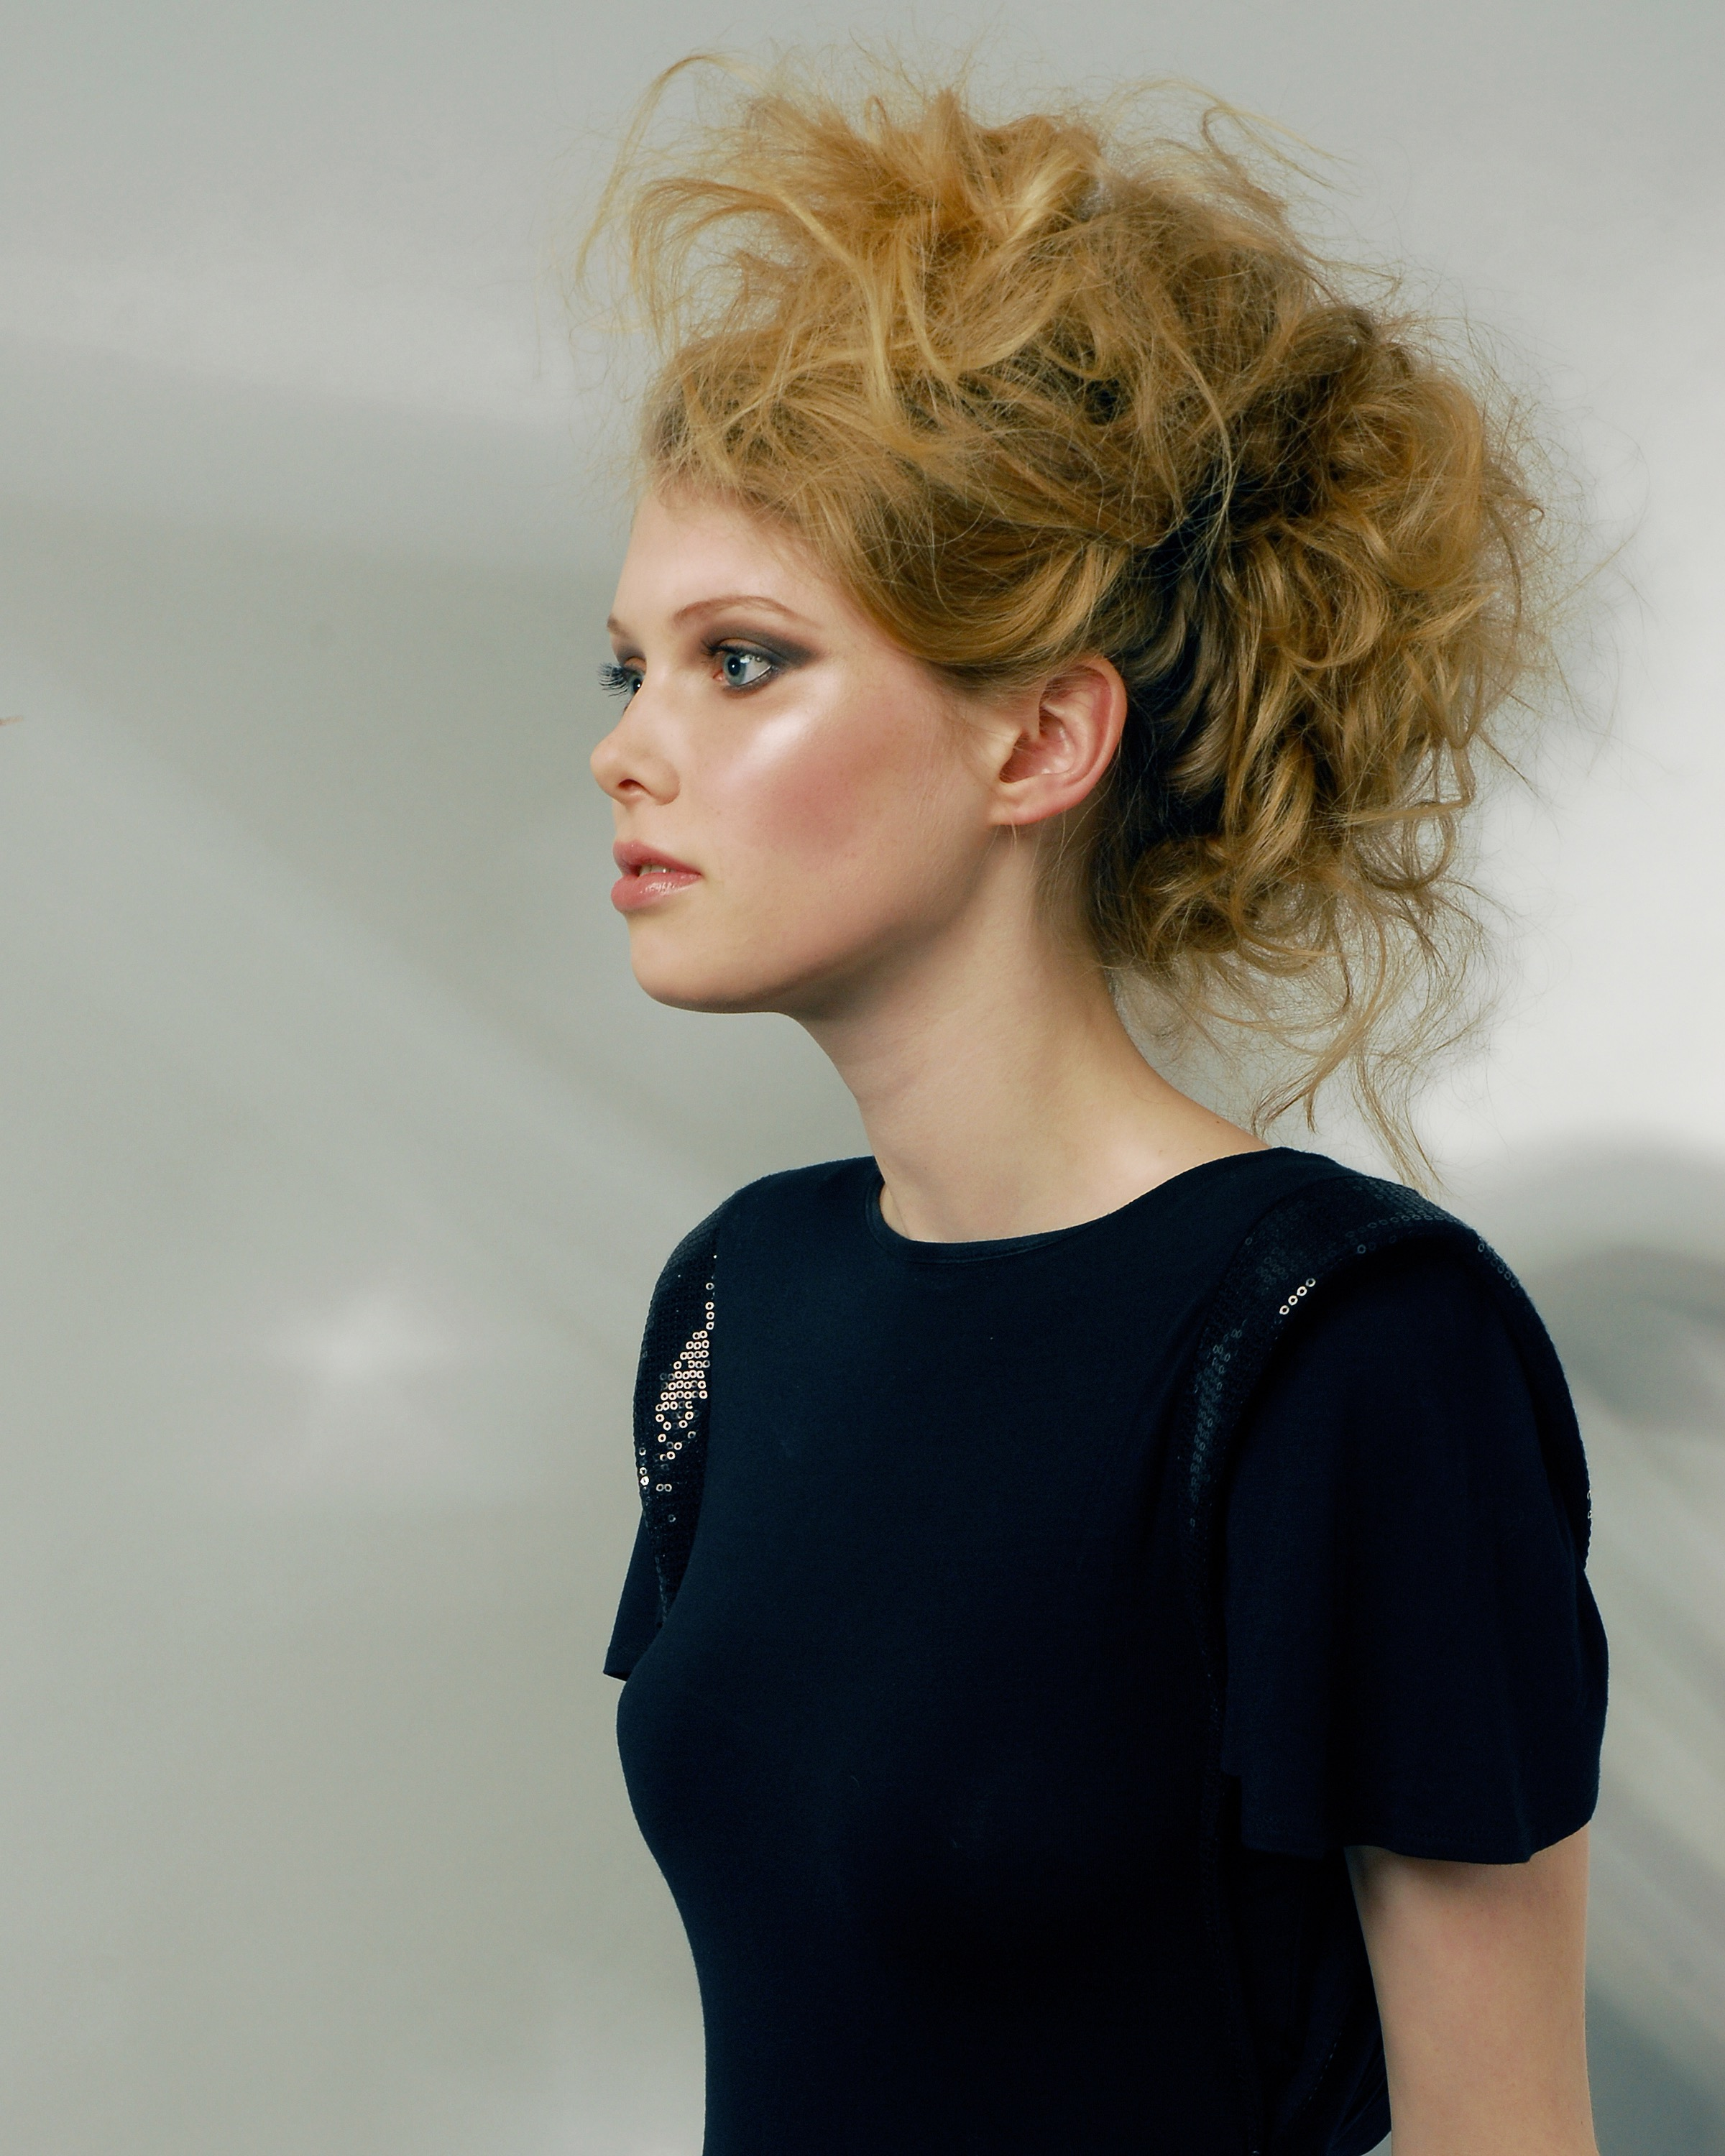 Eva Bogdalska make-up hair